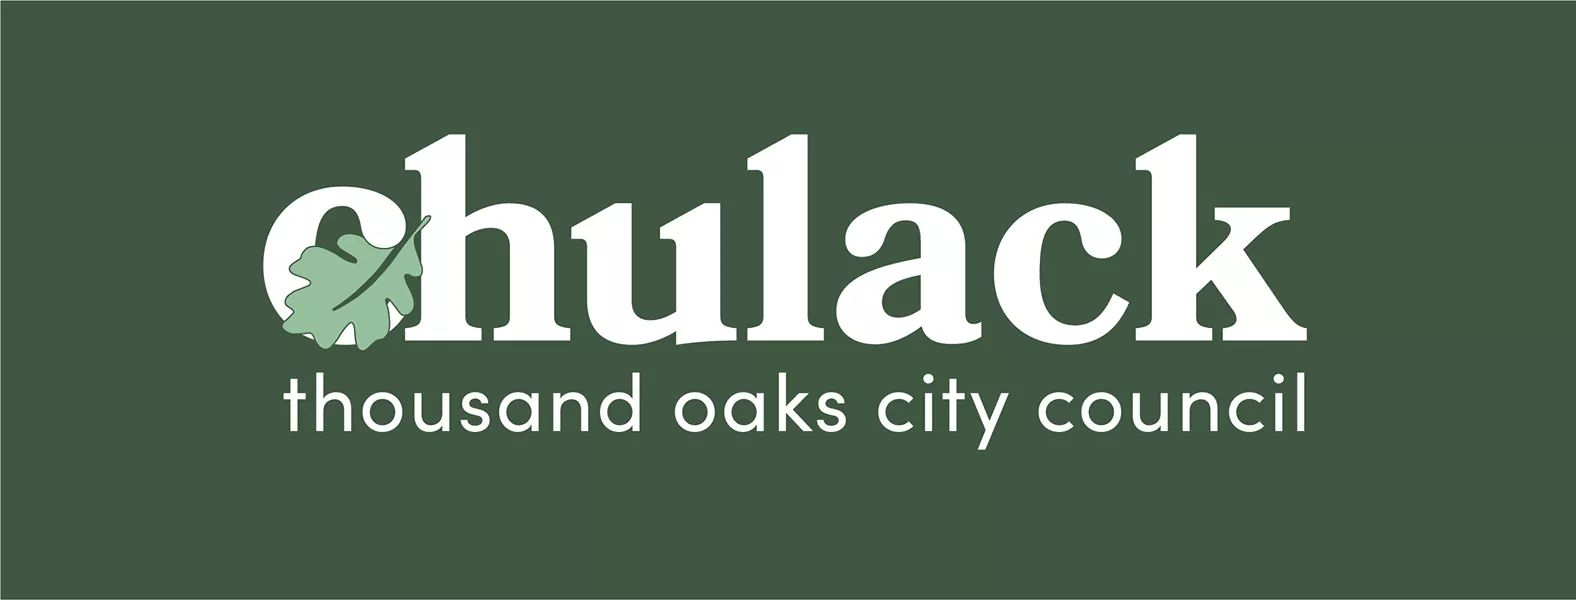 Danny Chulack for Council 2020